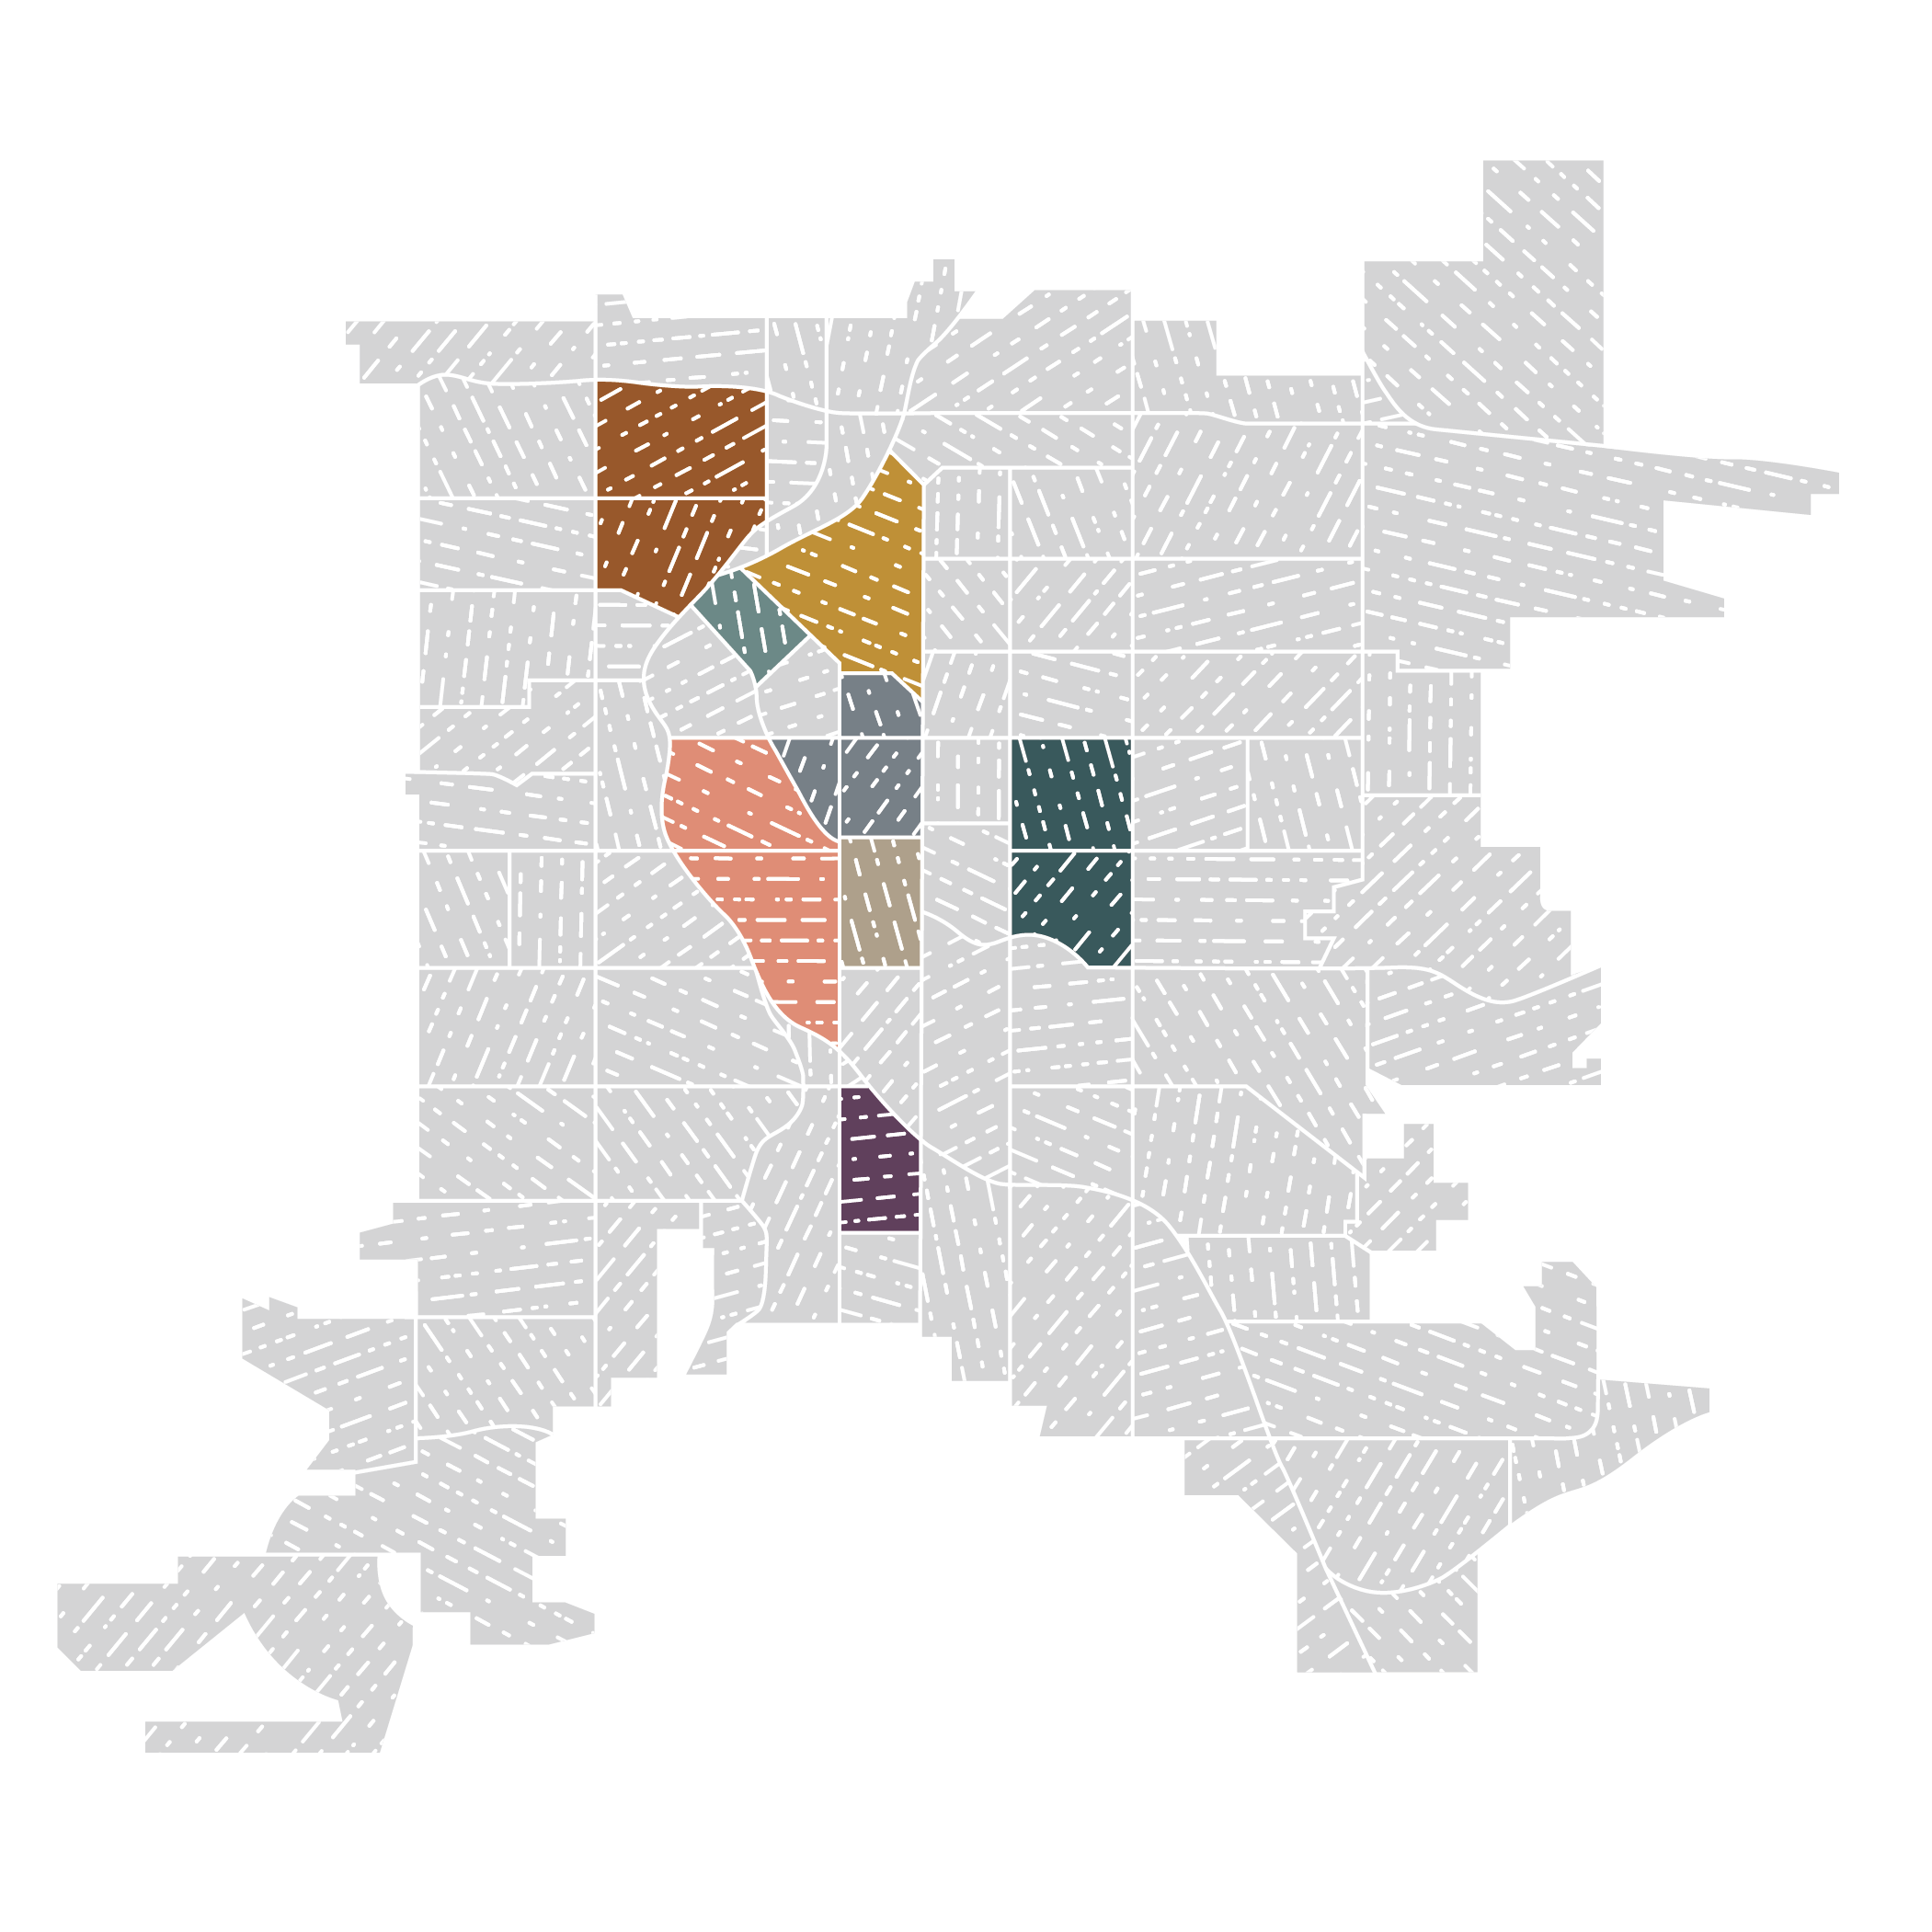 DenverMap_Colors-01-01.png